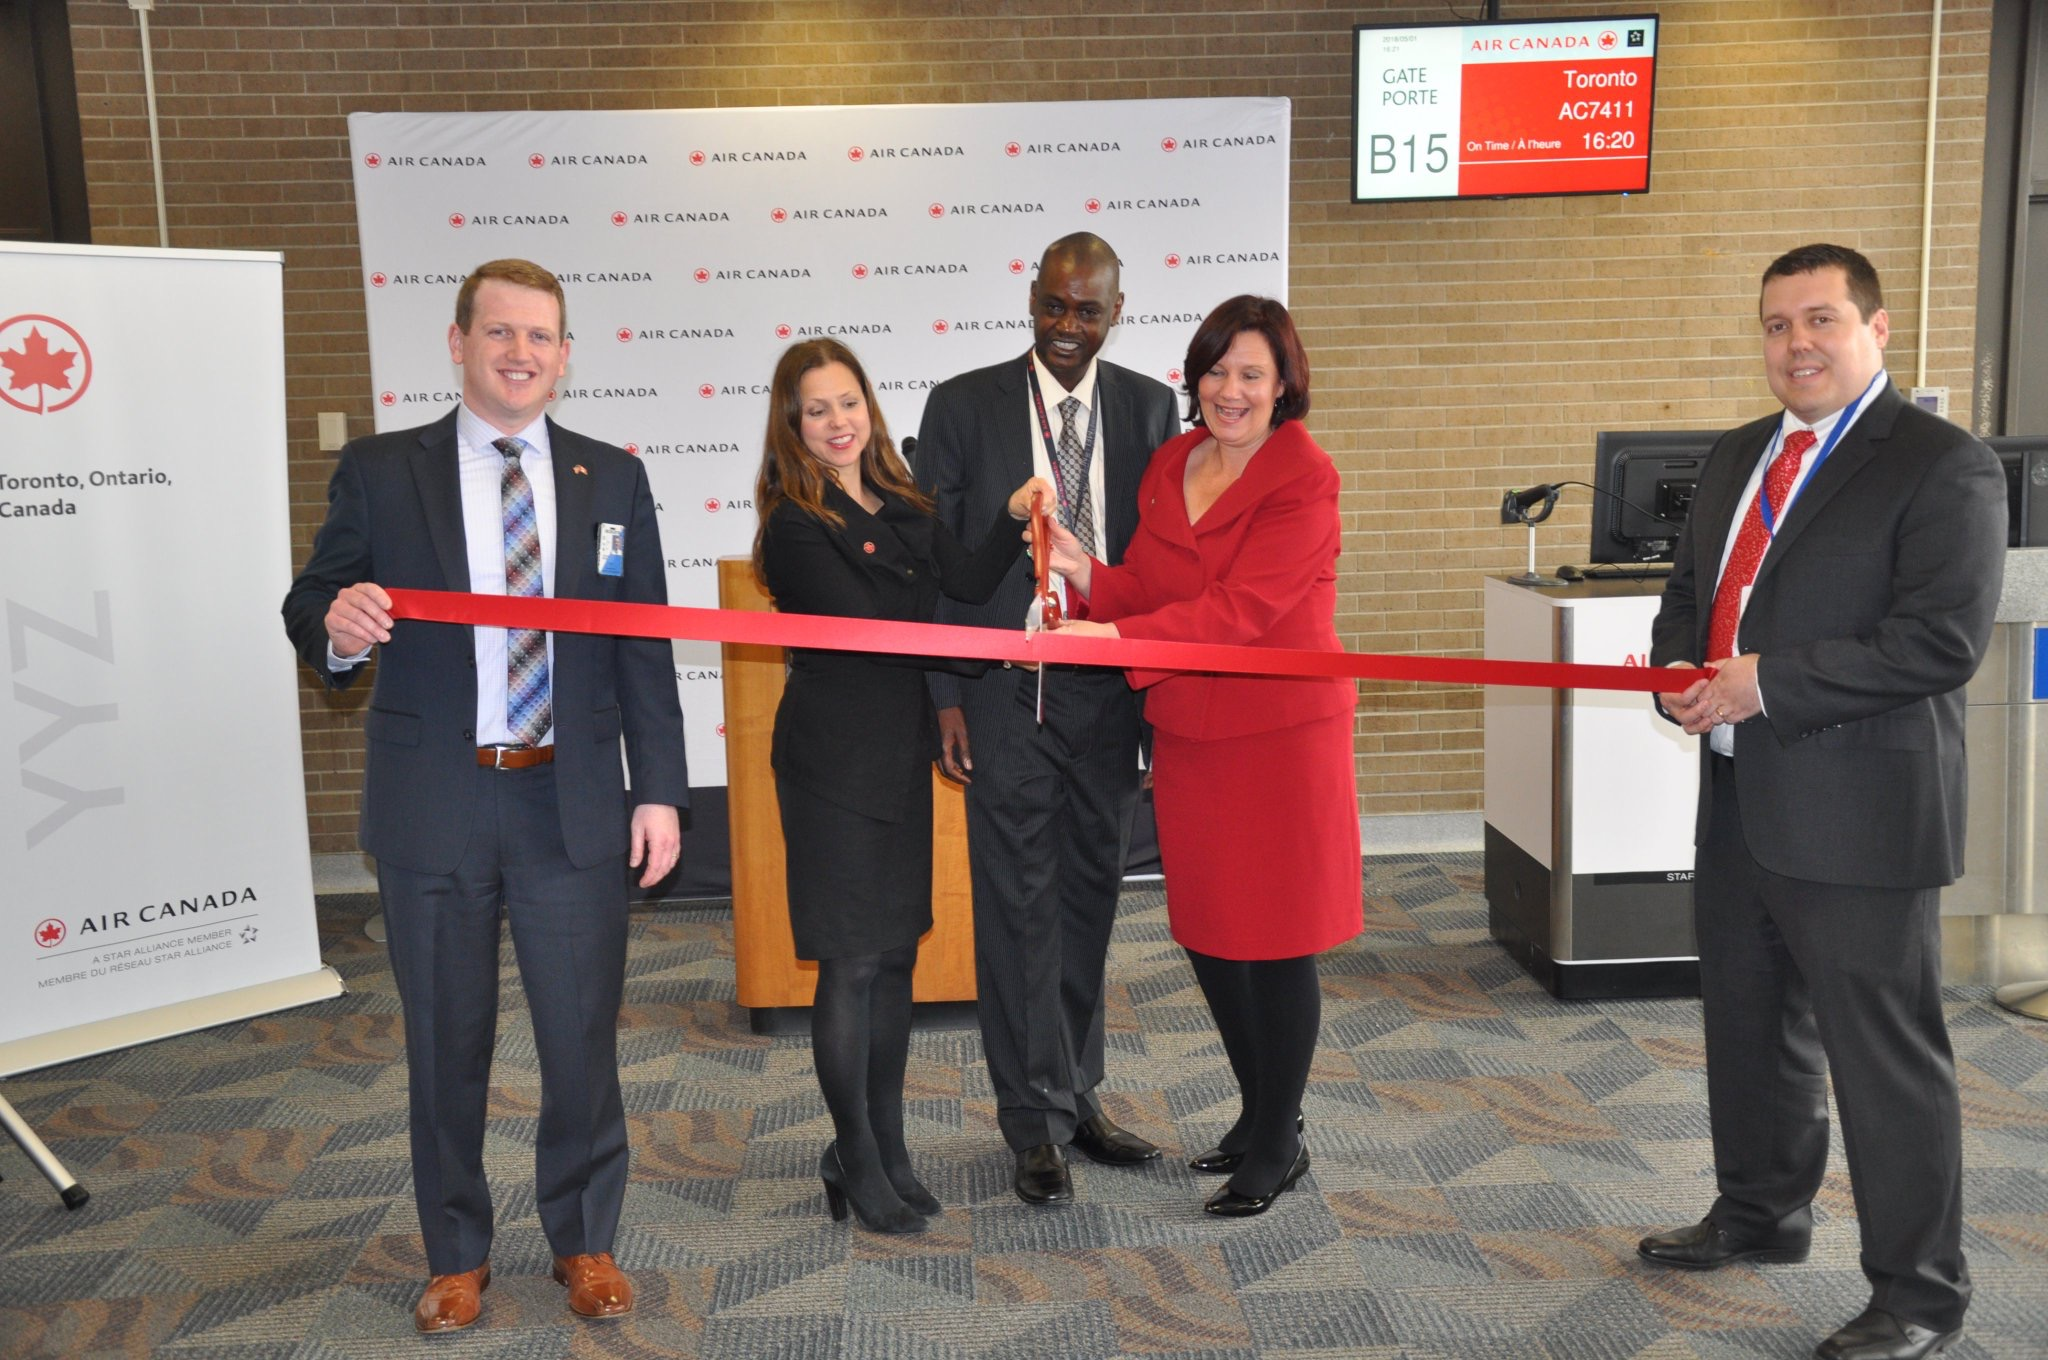 Ribbon cutting ceremony at the gate in Omaha. (Photo: Eppley Airfield)